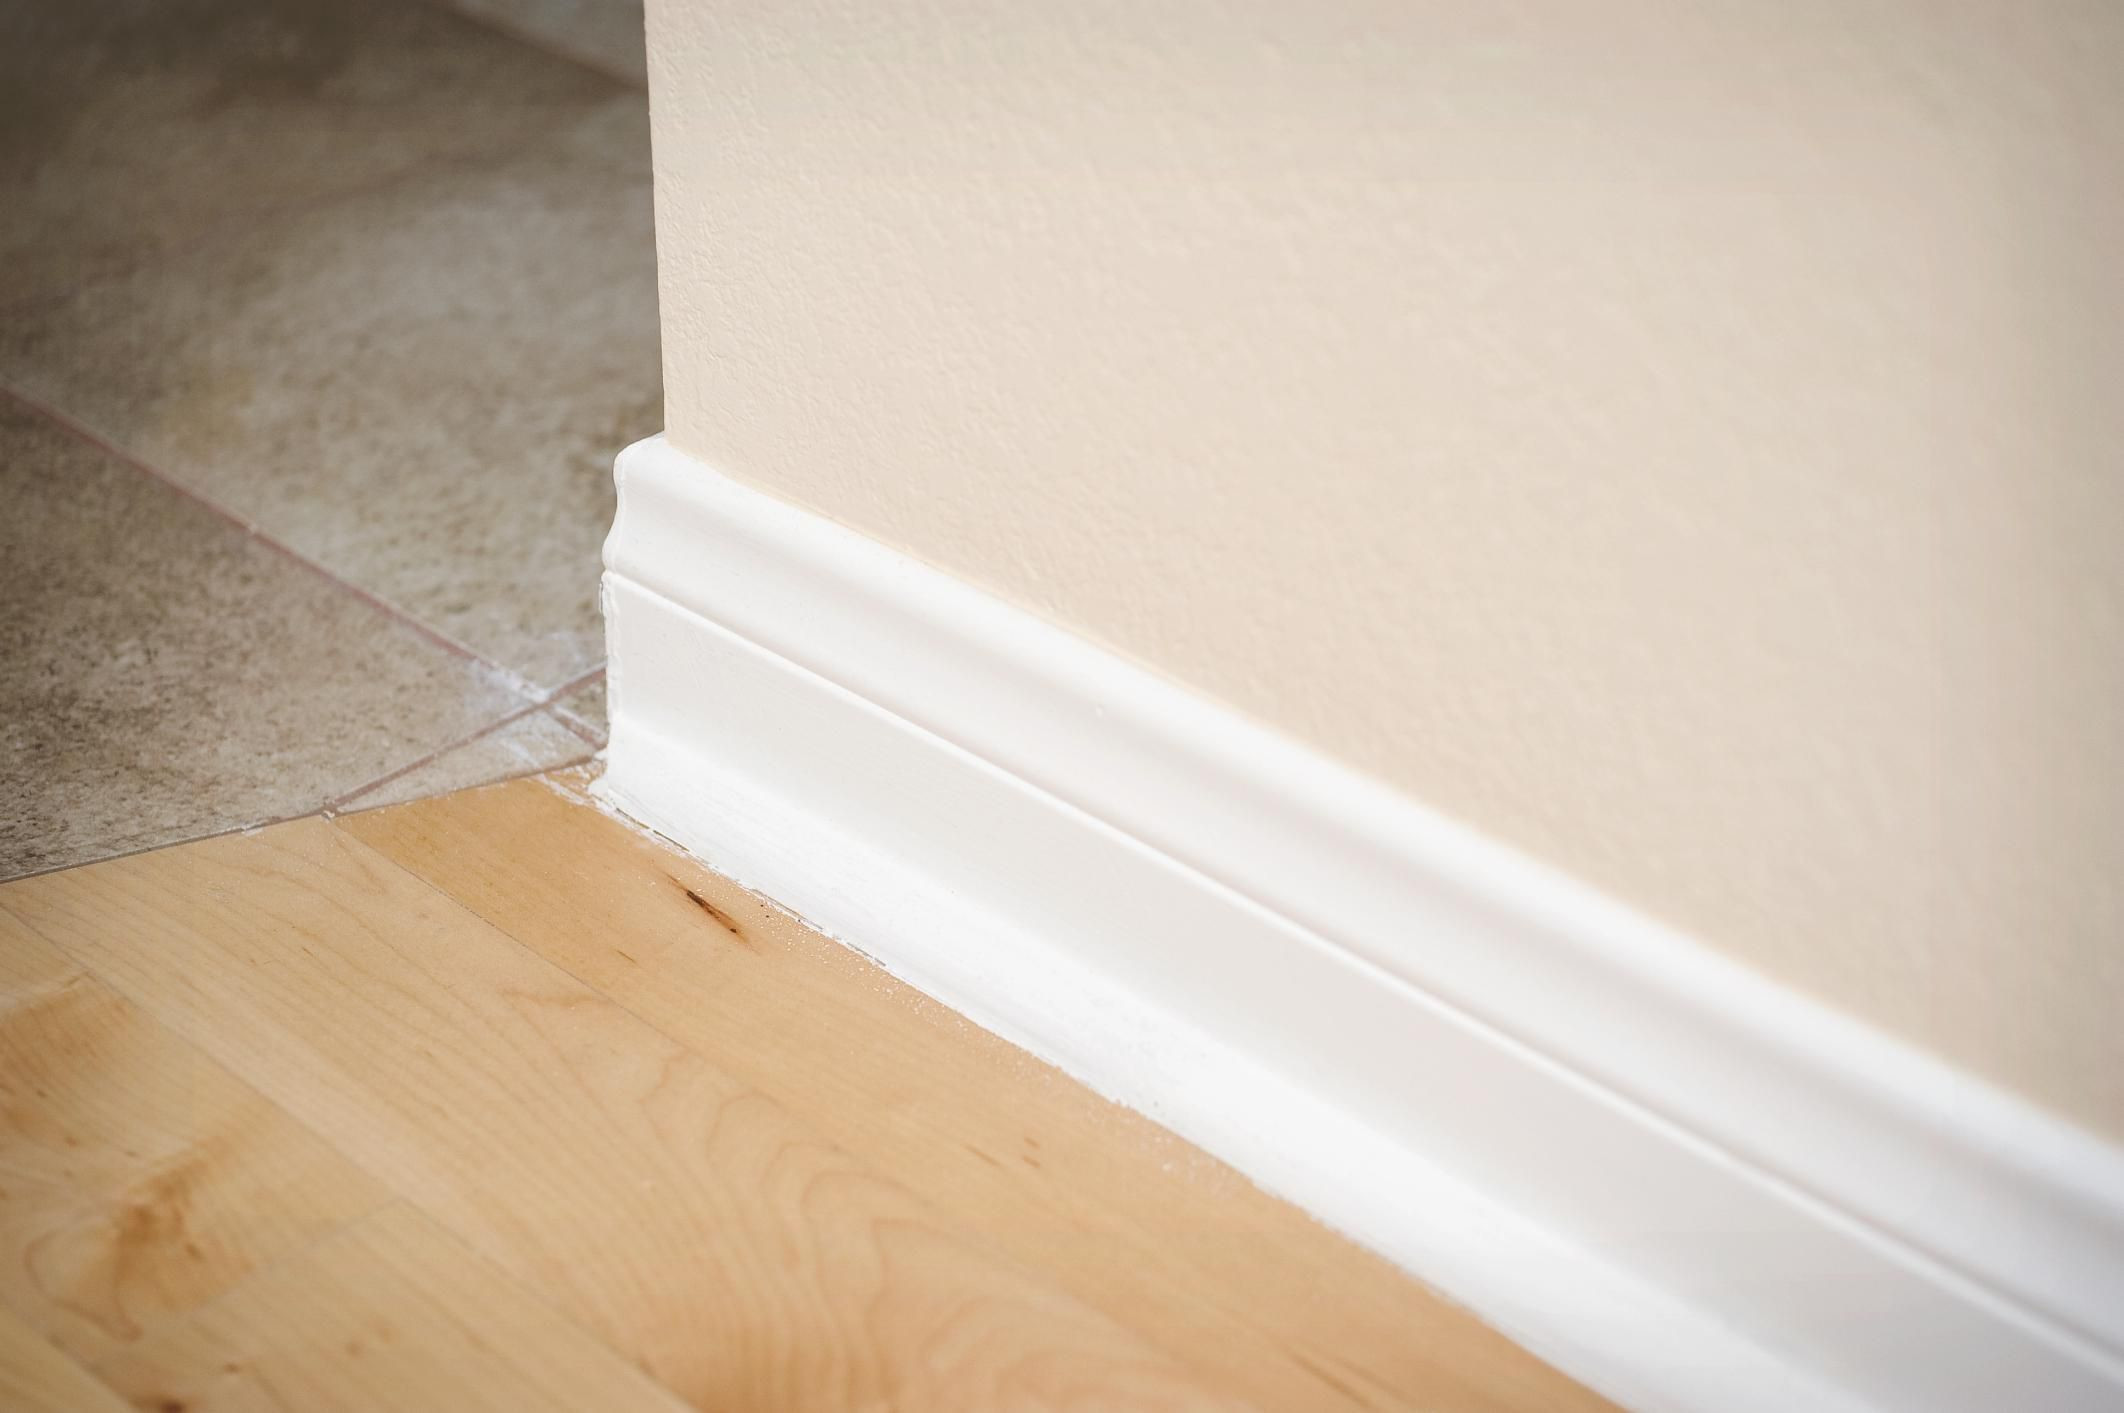 hardwood floor refinishing techniques of how to paint baseboards advice and hacks for 150207475 56a49f1b5f9b58b7d0d7e0d6